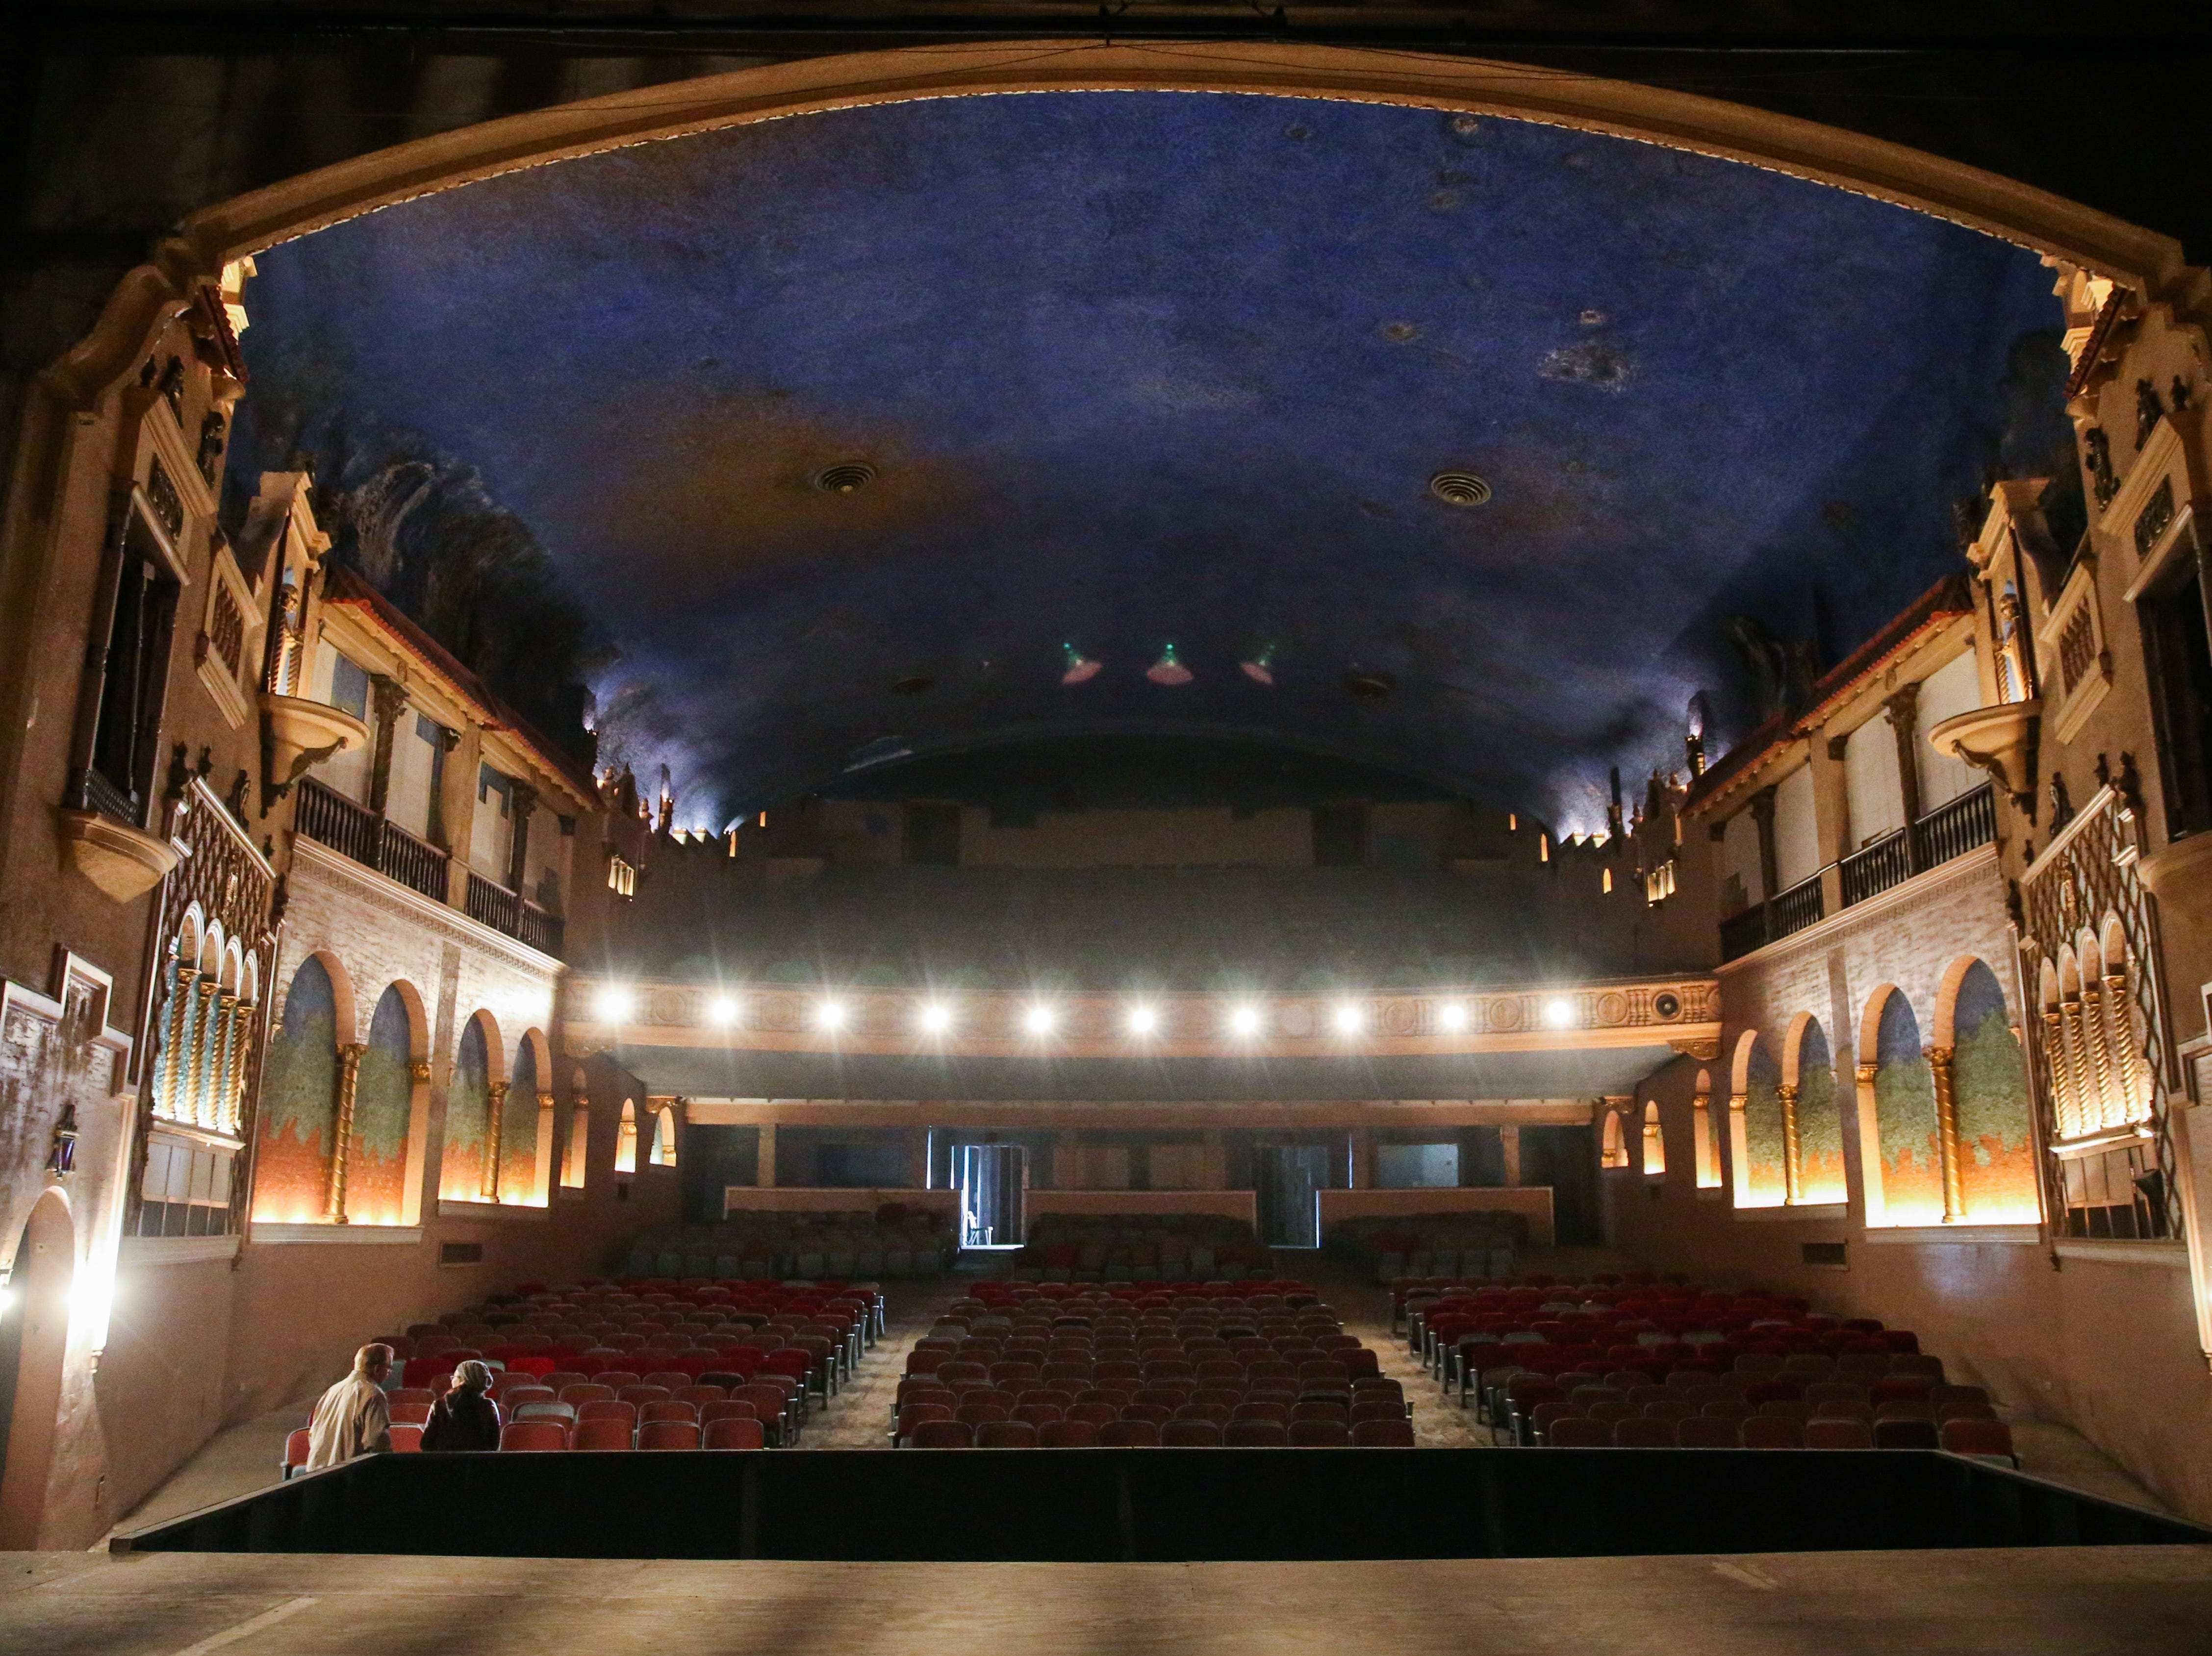 The view from the stage of the former Texas Theatre in downtown San Angelo. The last performance was in 2015.